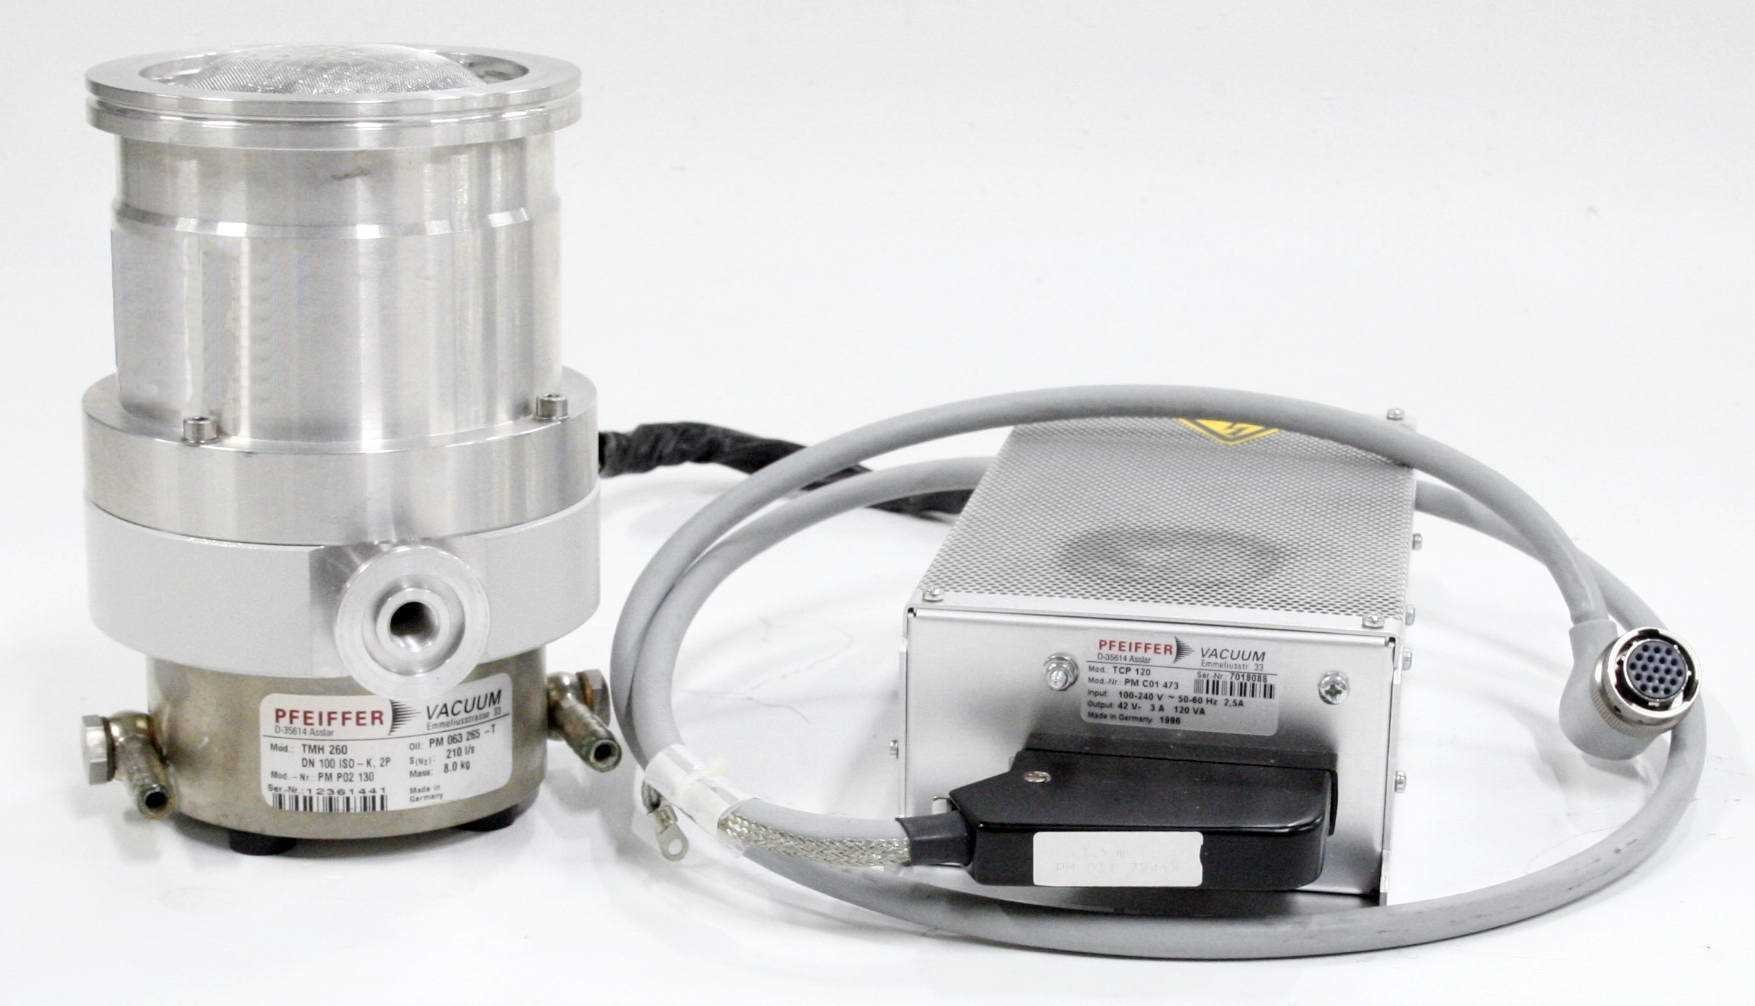 Pfeiffer Vacuum Turbo Pump TMH-260 with Controller TCP-120